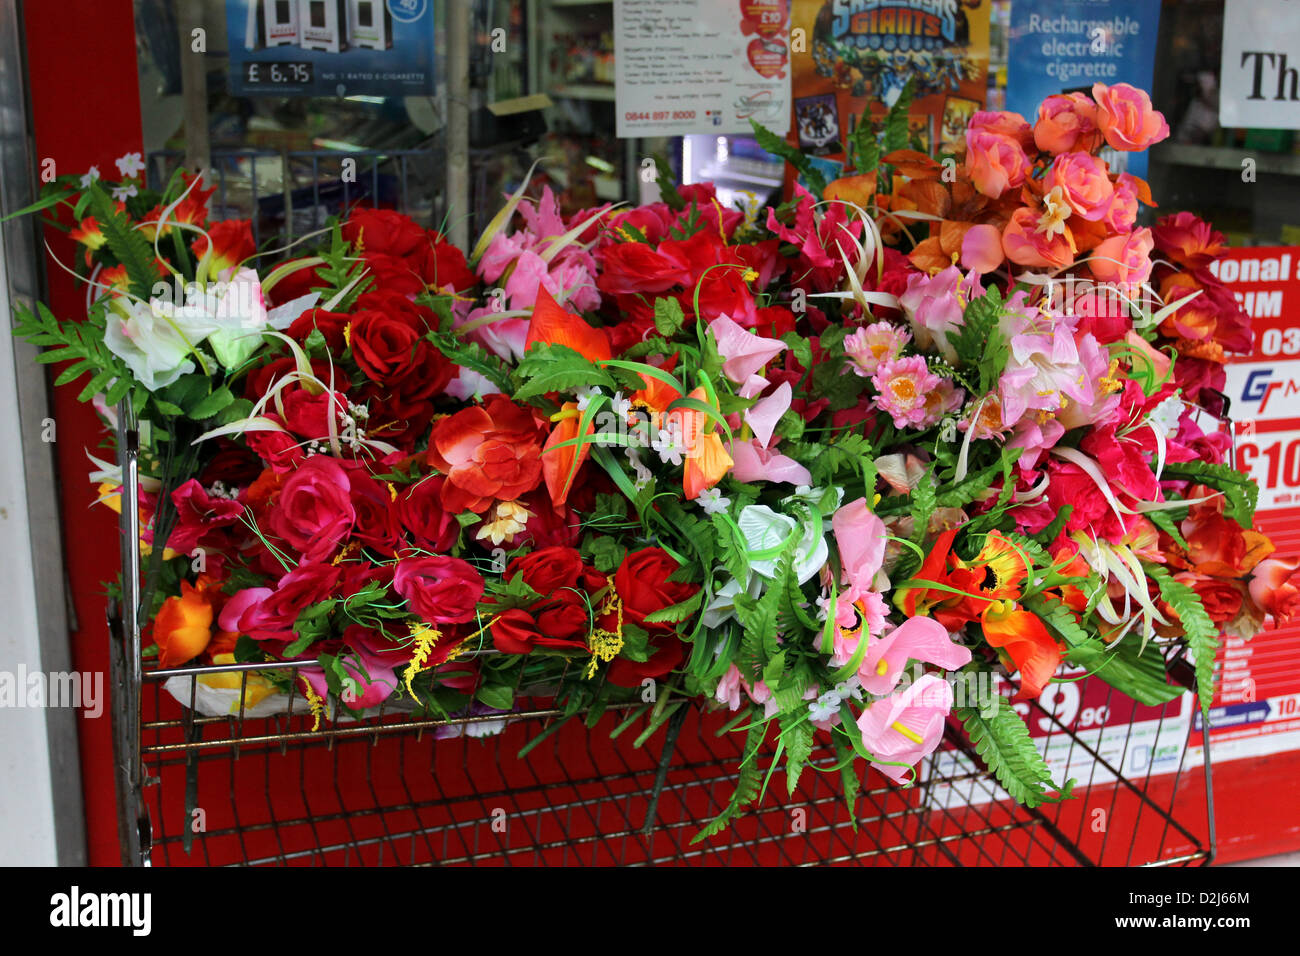 Fake Flowers For Sale Stock Photos Fake Flowers For Sale Stock